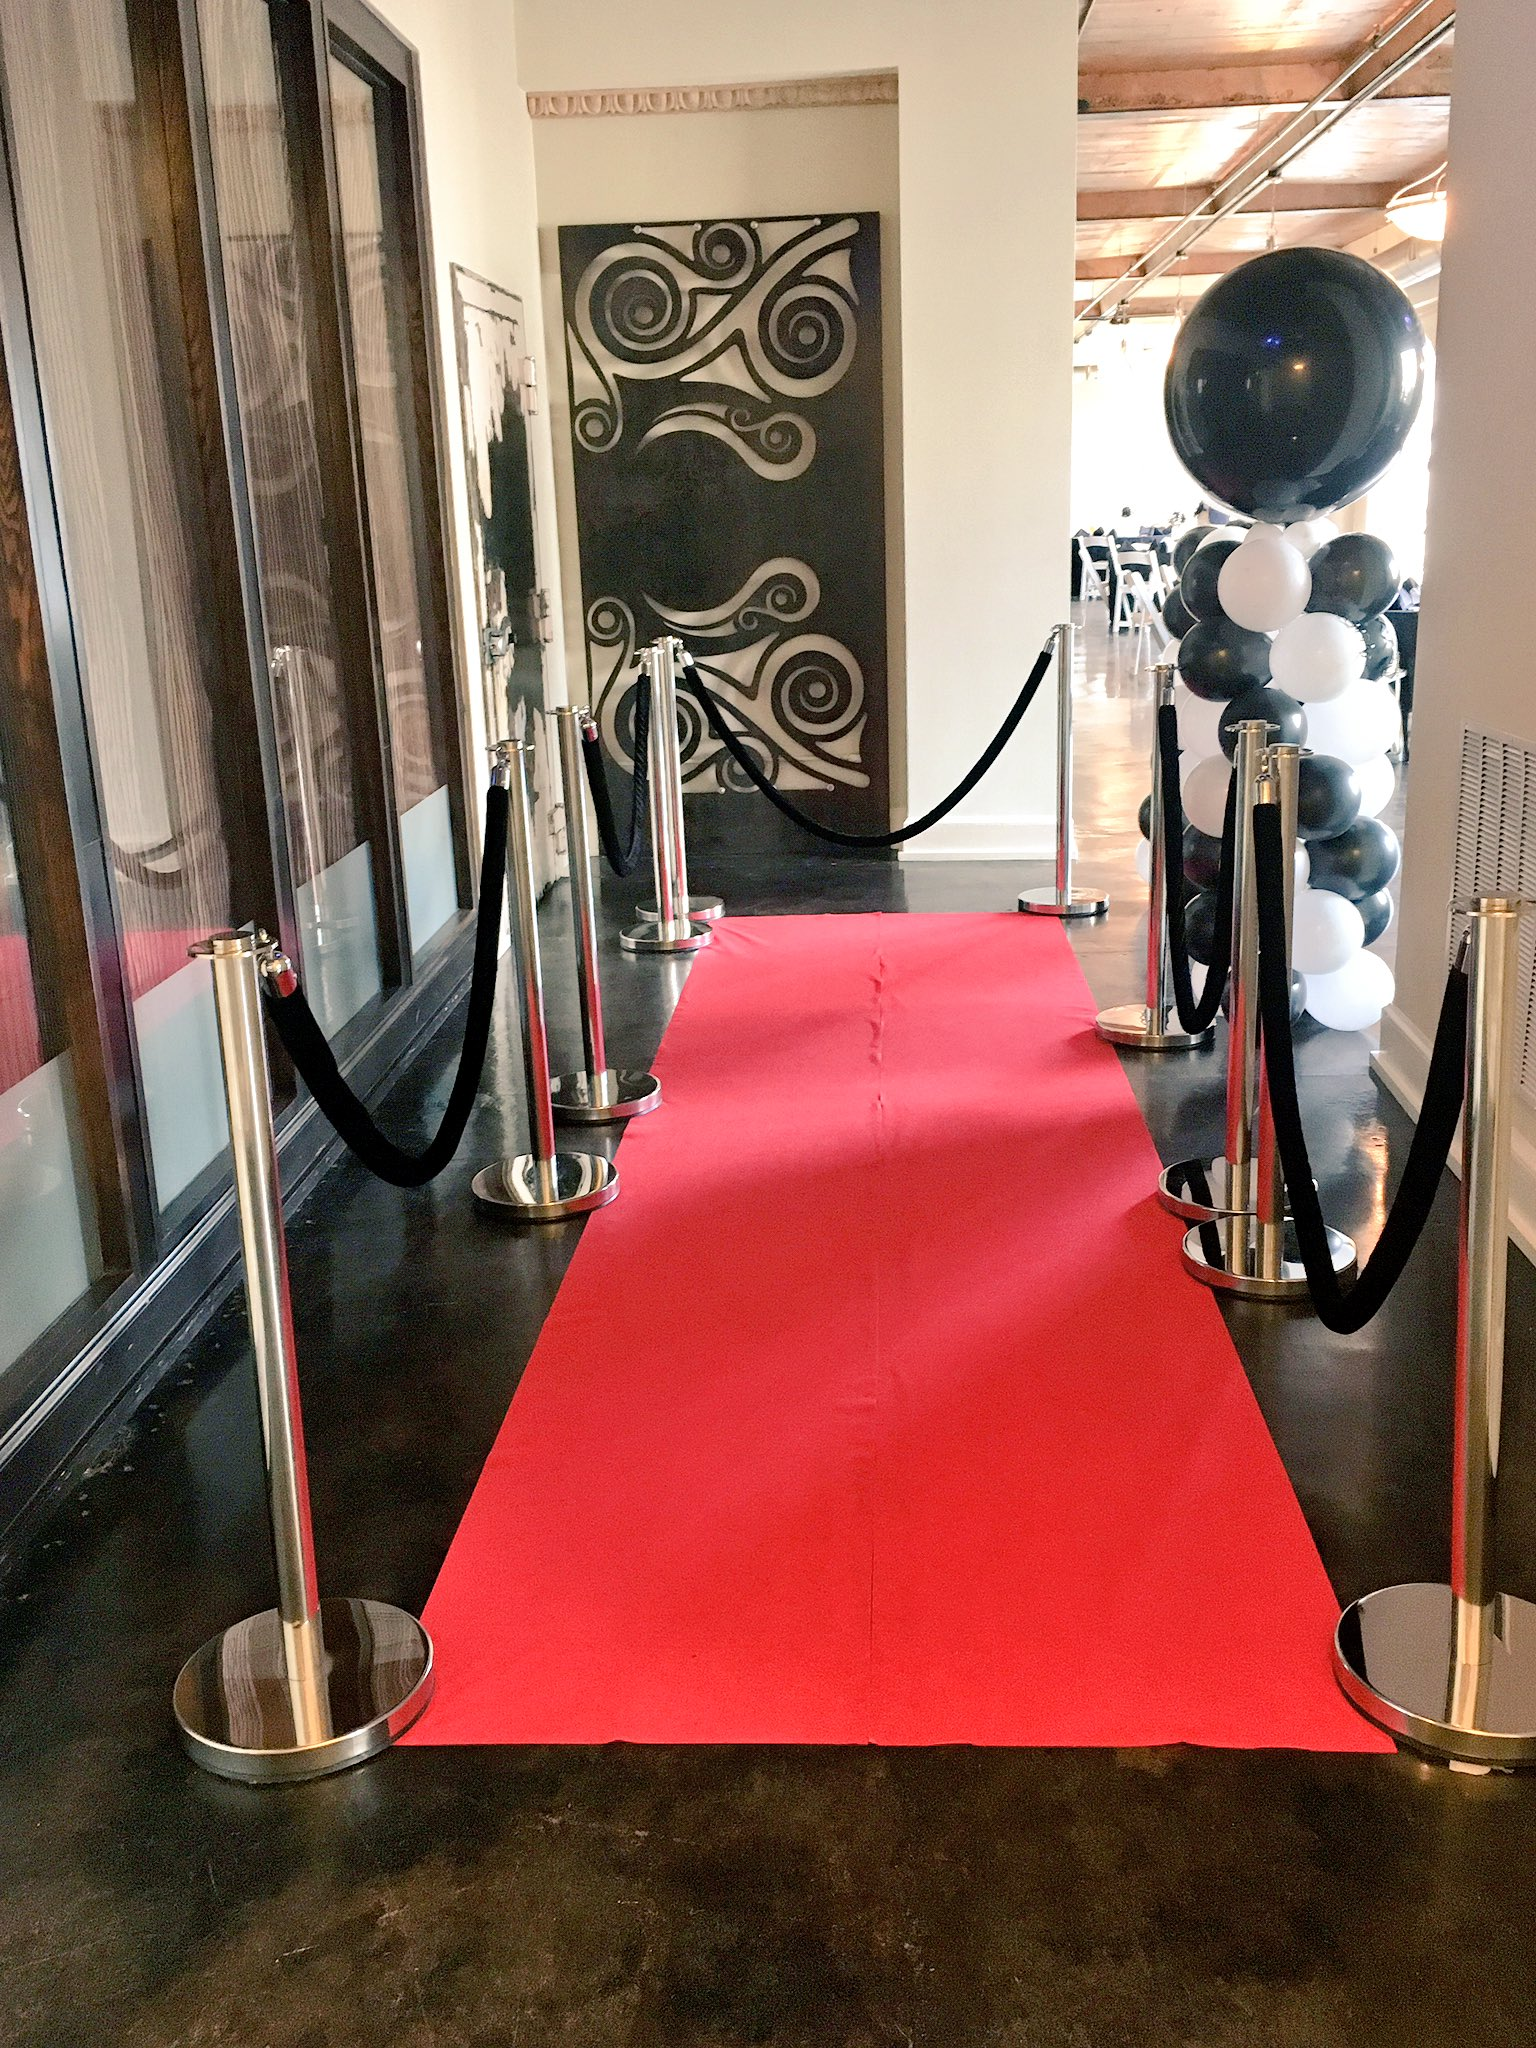 The red carpet is rolled out & #NETNTour is officially here! @BANQDowntownKpt https://t.co/R0IkP578S2